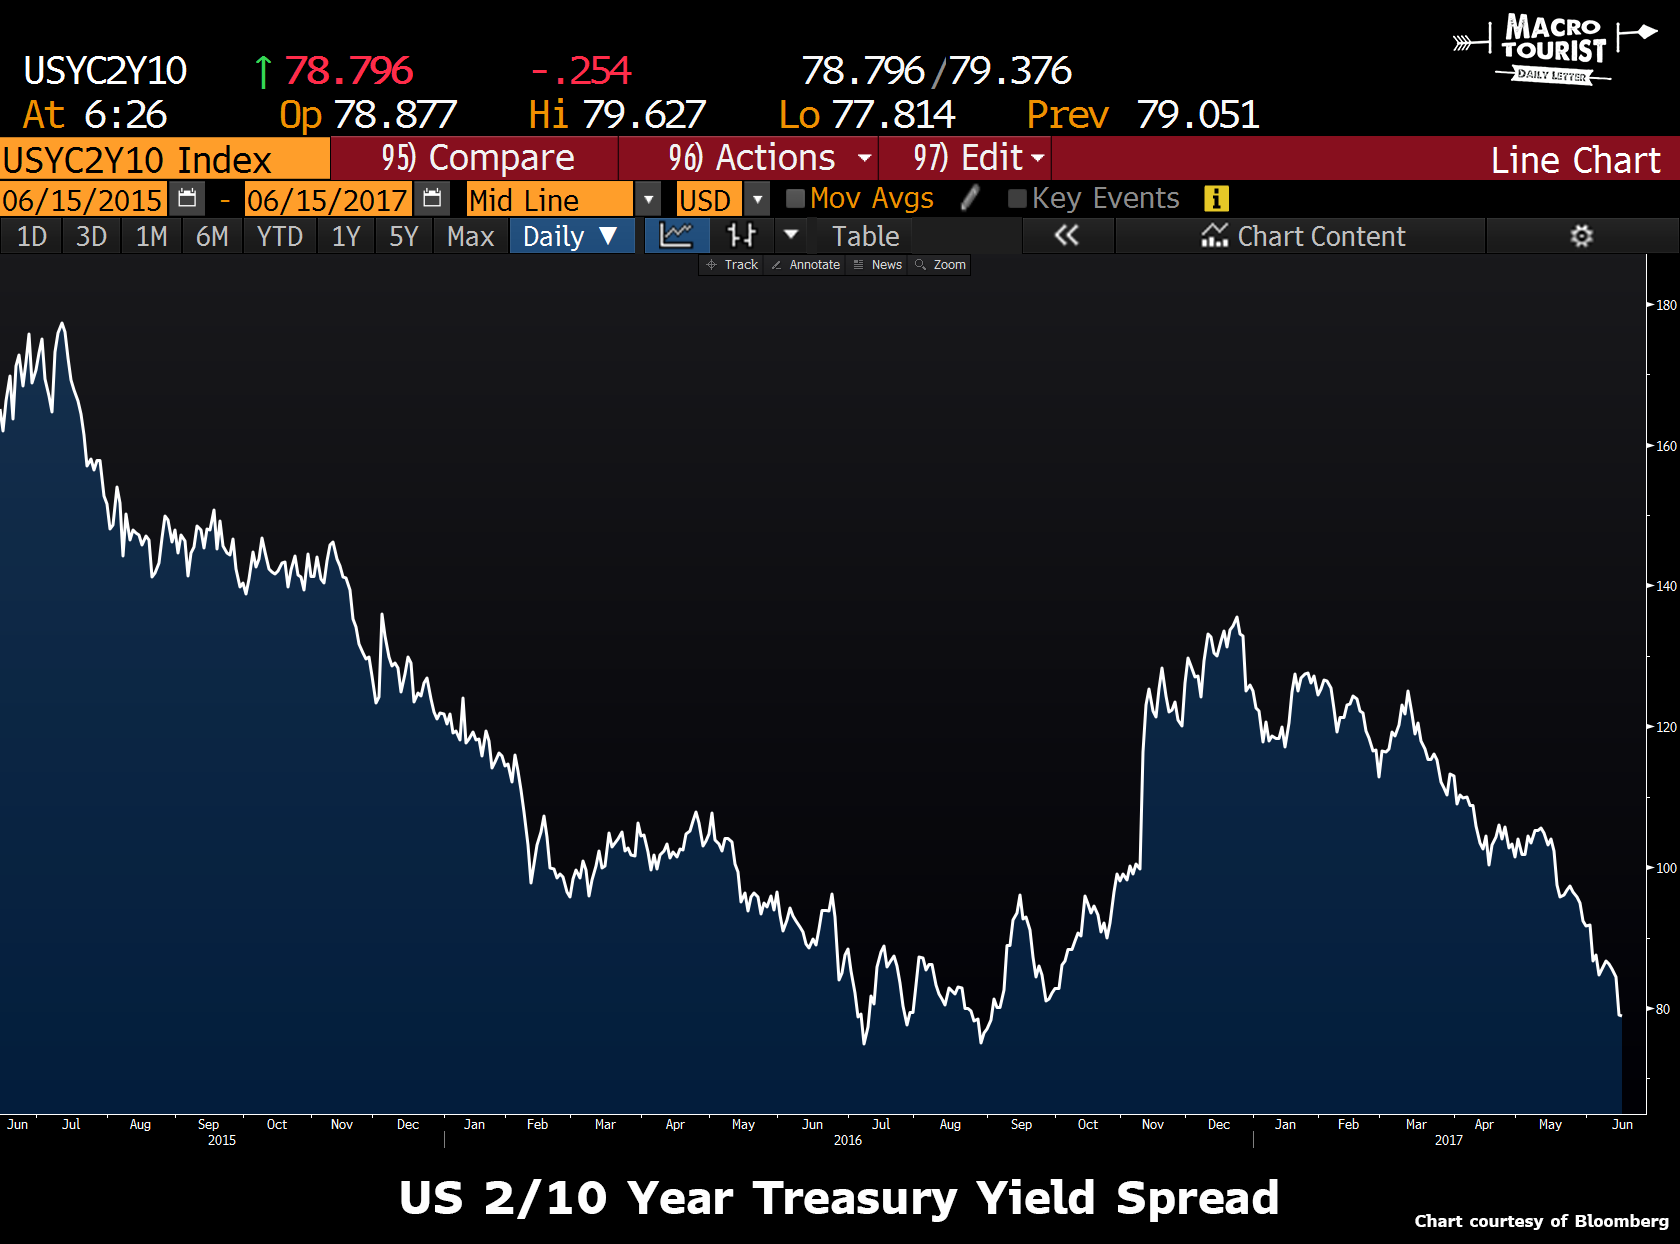 US 2/10 Year Treasury Yield Curve Spread, 2015 - 2017